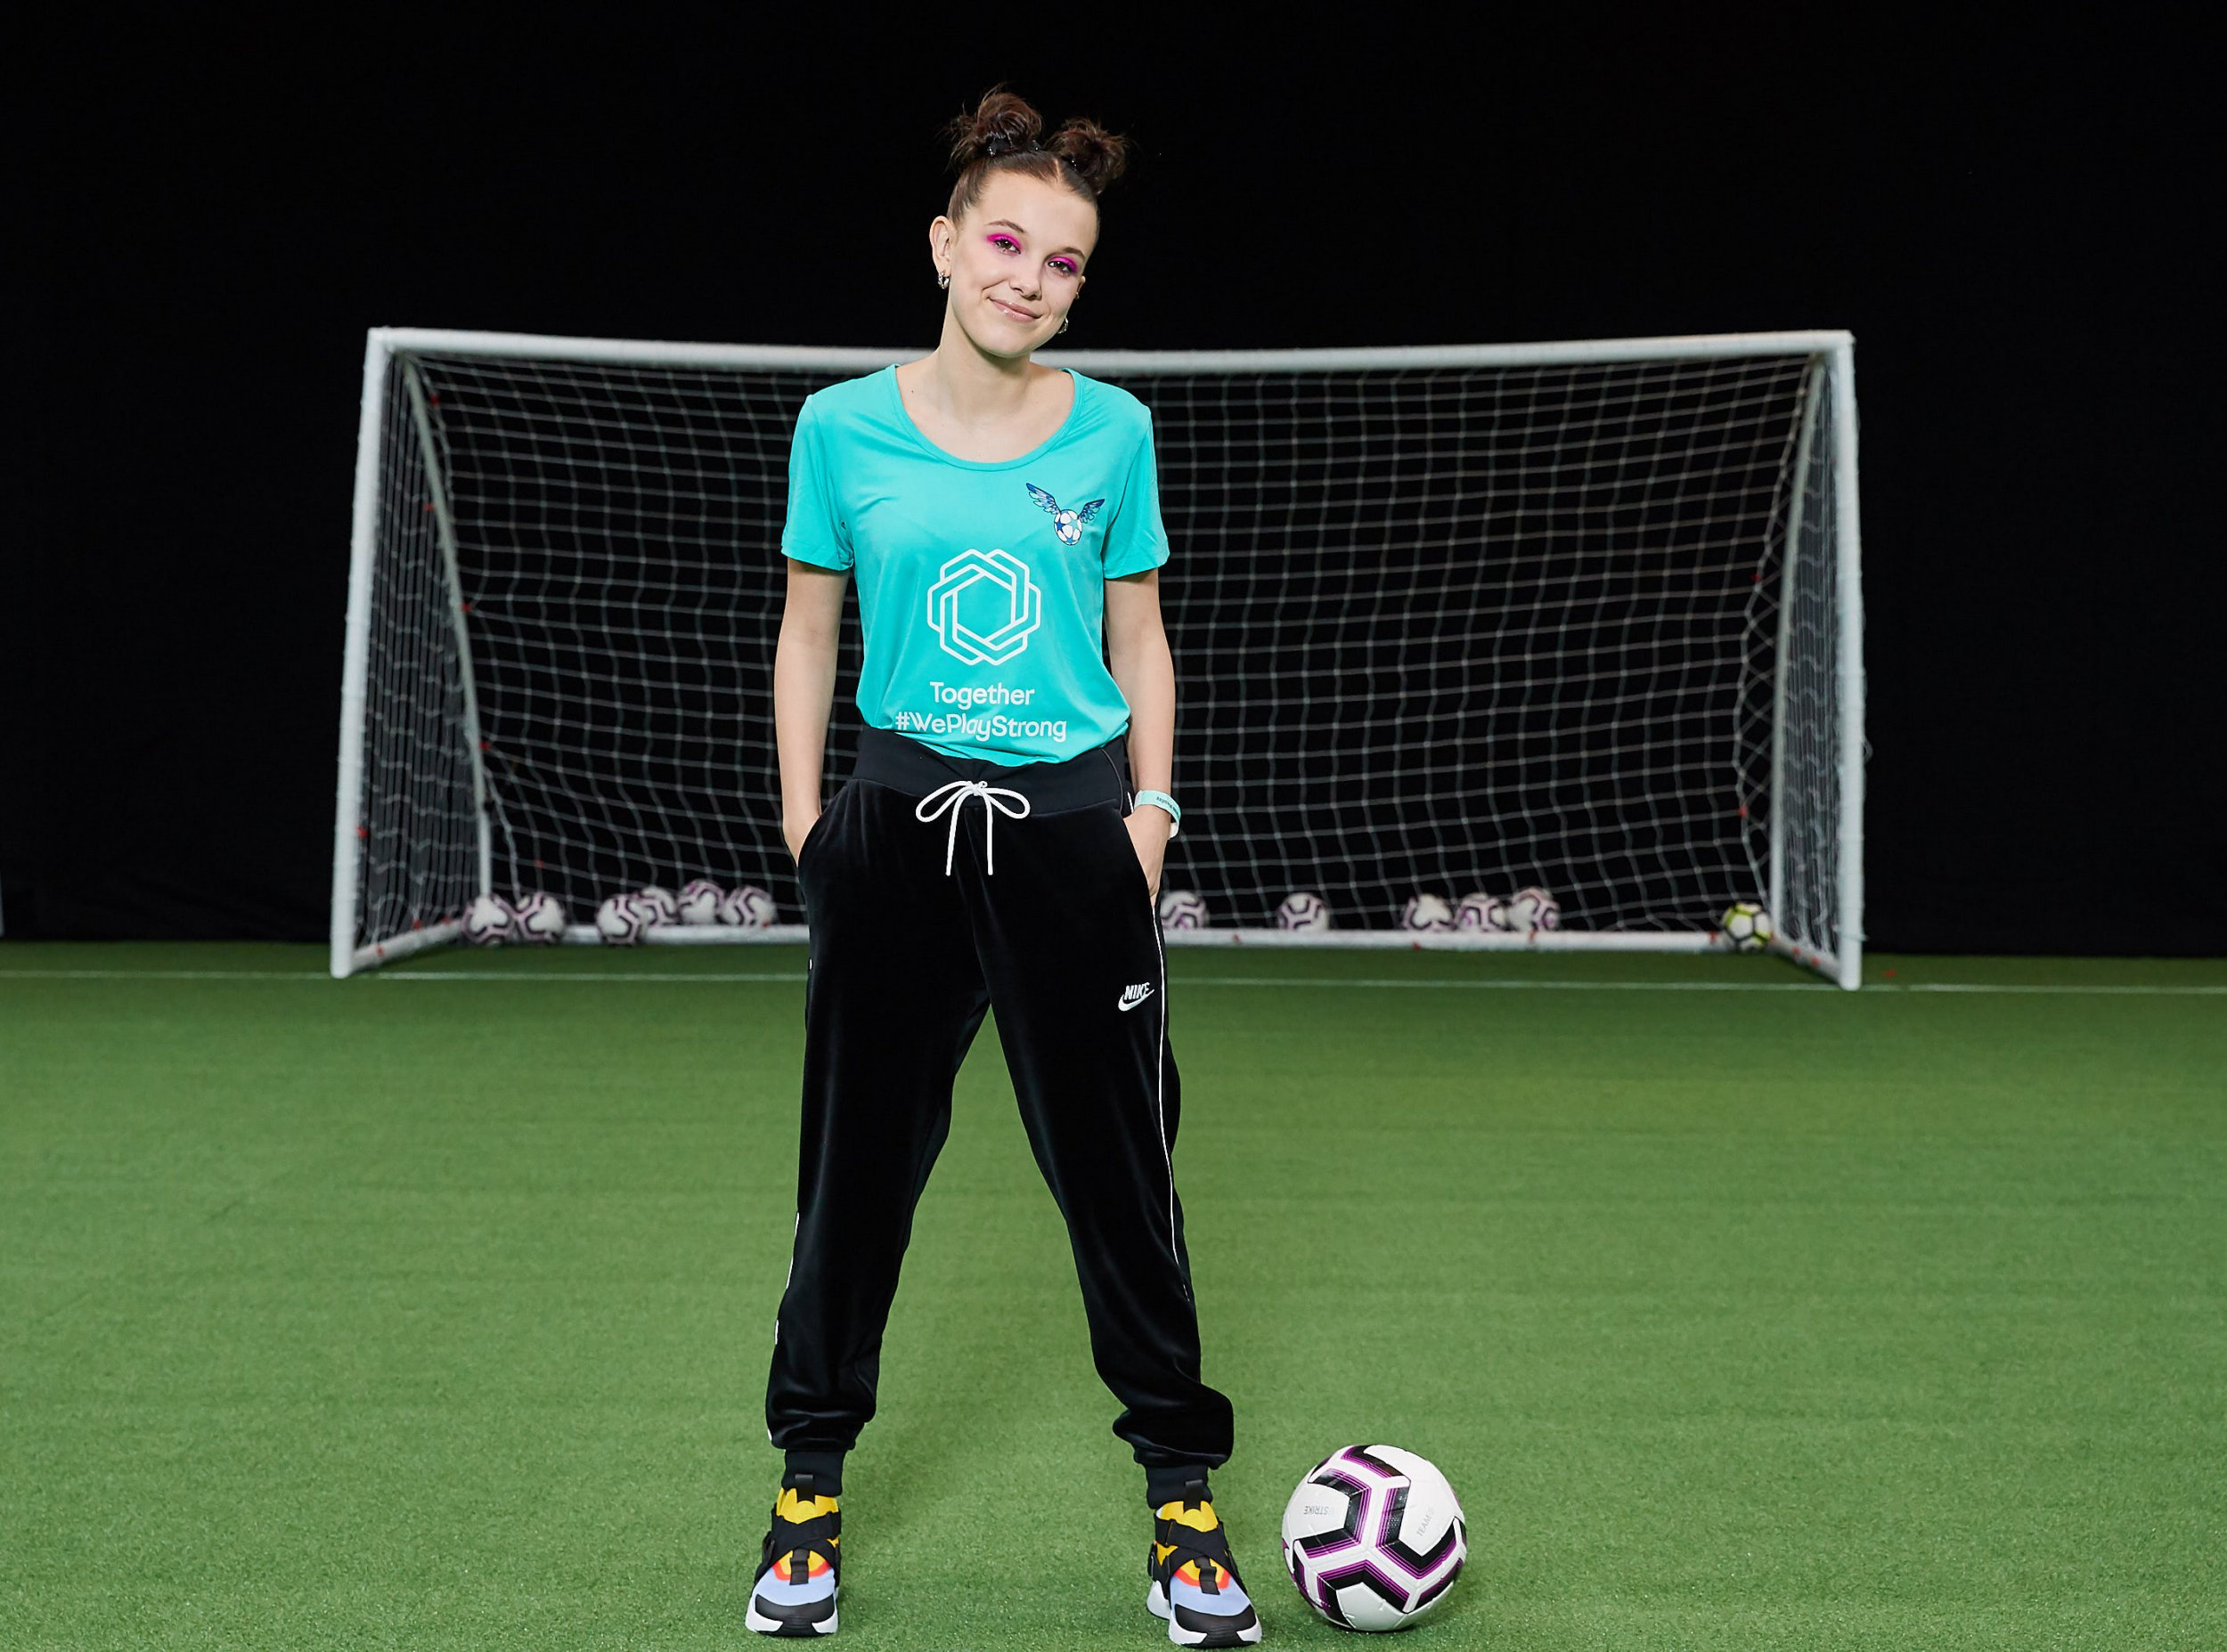 """Millie Bobby Brown shows off her football [soccer] skills - as she teams up with UEFA [Union of European Football Associations] to transform the game. The Stranger Things star has been unveiled as the newest ambassador of UEFA's Together #WePlayStrong campaign. The ground-breaking partnership is designed to transform the image of women s football and inspire young girls to play. Actress Millie, 15, is an avid Liverpool FC fan and grew up kicking a ball around with her football-loving family. She marked the collabortaion by surprising a group of young girls and joining in with a football skills session organised by UEFA at Wembley Stadium in London. She said: Kicking the ball around with the girls was really cool and fun. It felt great to be part of a team that has such a strong sense of unity."""" Through the Together #WePlayStrong campaign, UEFA aims to make football more culturally relevant and aspirational for girls in their teenage years, where they traditionally drop out in large numbers. Nadine Kessler, UEFA s Head of Women s Football, said: Millie Bobby Brown is a source of inspiration and motivation to so many young people across the world and we re excited to have her on board."""" Editorial use only. Must credit Courtesy of UEFA/MEGA. 26 Mar 2019 Pictured: Millie Bobby Brown for UEFA. Photo credit: Courtesy of UEFA/MEGA TheMegaAgency.com +1 888 505 6342"""